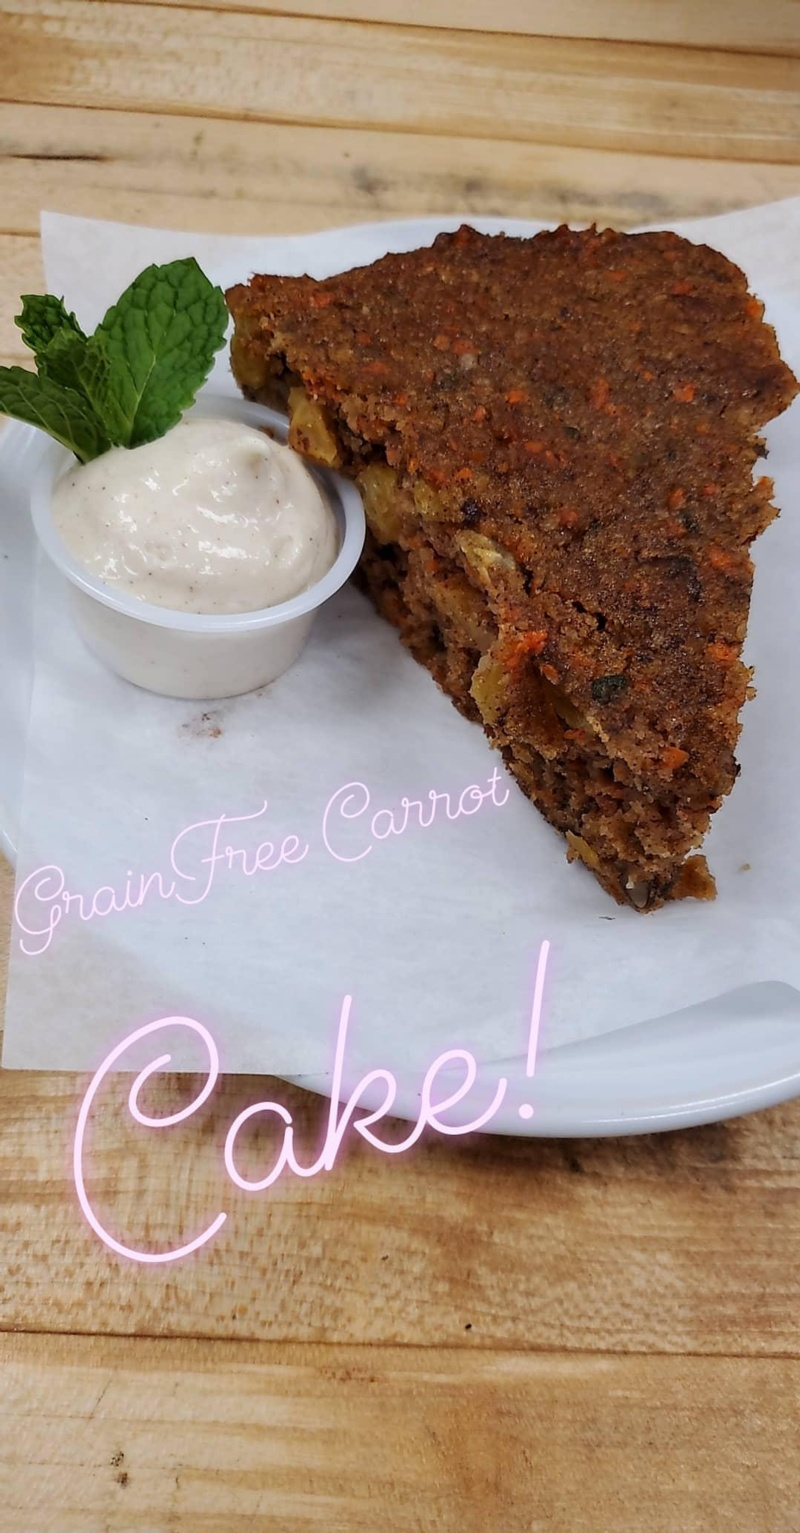 Grain Free Sugar Free Carrot Cake